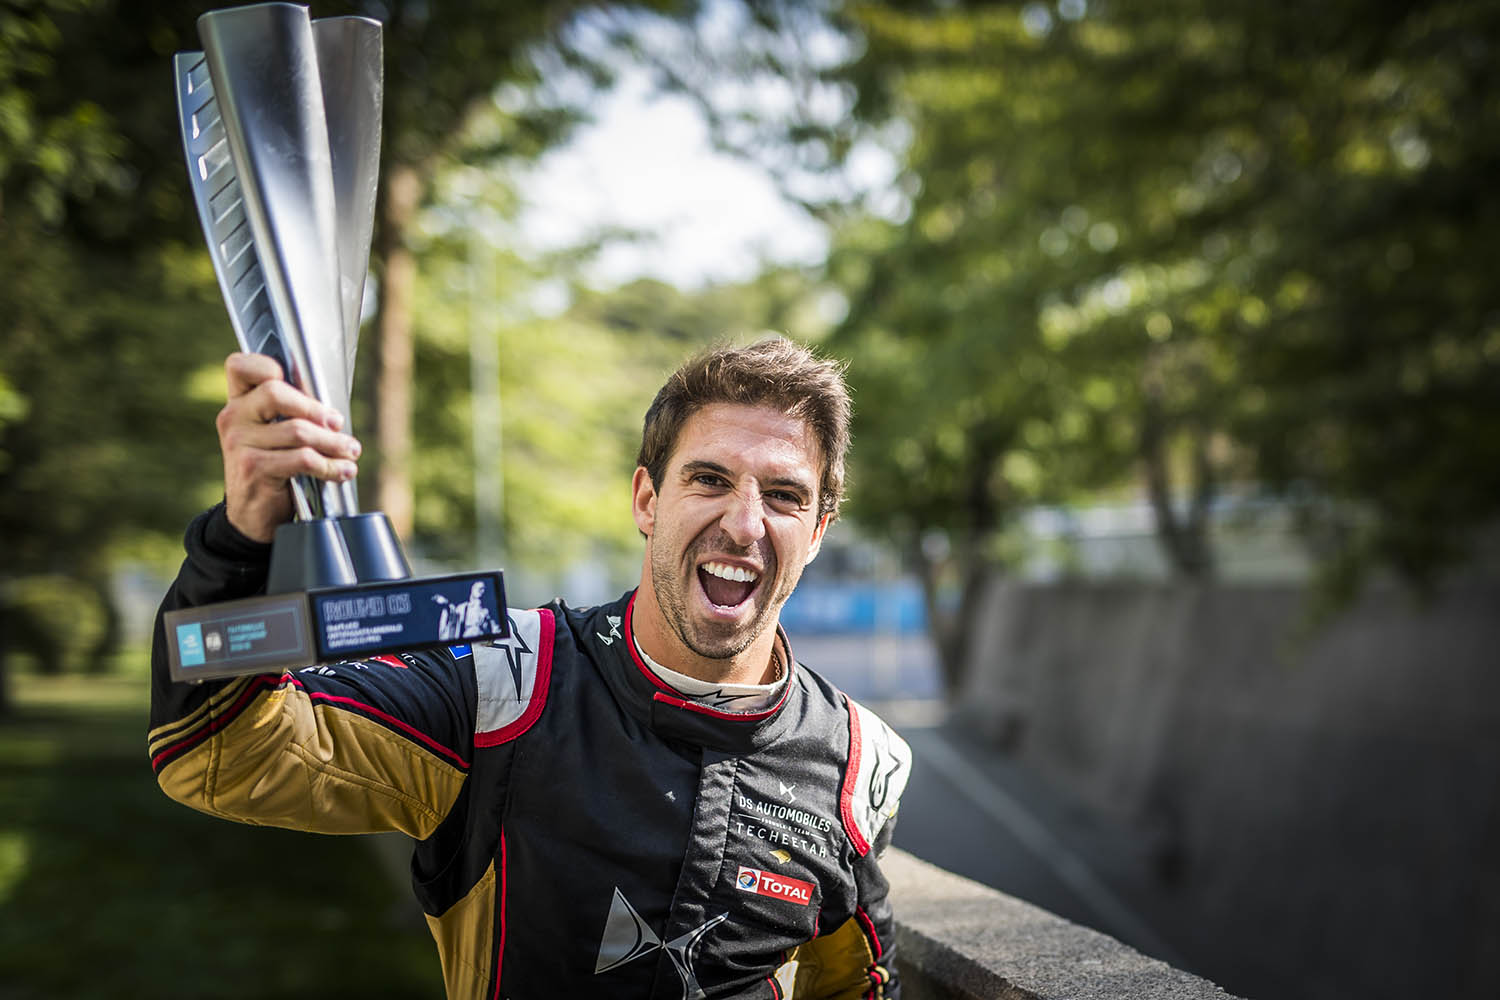 PARQUE O'HIGGINS CIRCUIT, CHILE - JANUARY 18: Antonio Felix da Costa (PRT), DS Techeetah, 2nd position, poses with his trophy during the Santiago E-prix at Parque O'Higgins Circuit on January 18, 2020 in Parque O'Higgins Circuit, Chile. (Photo by Sam Bloxham / LAT Images)